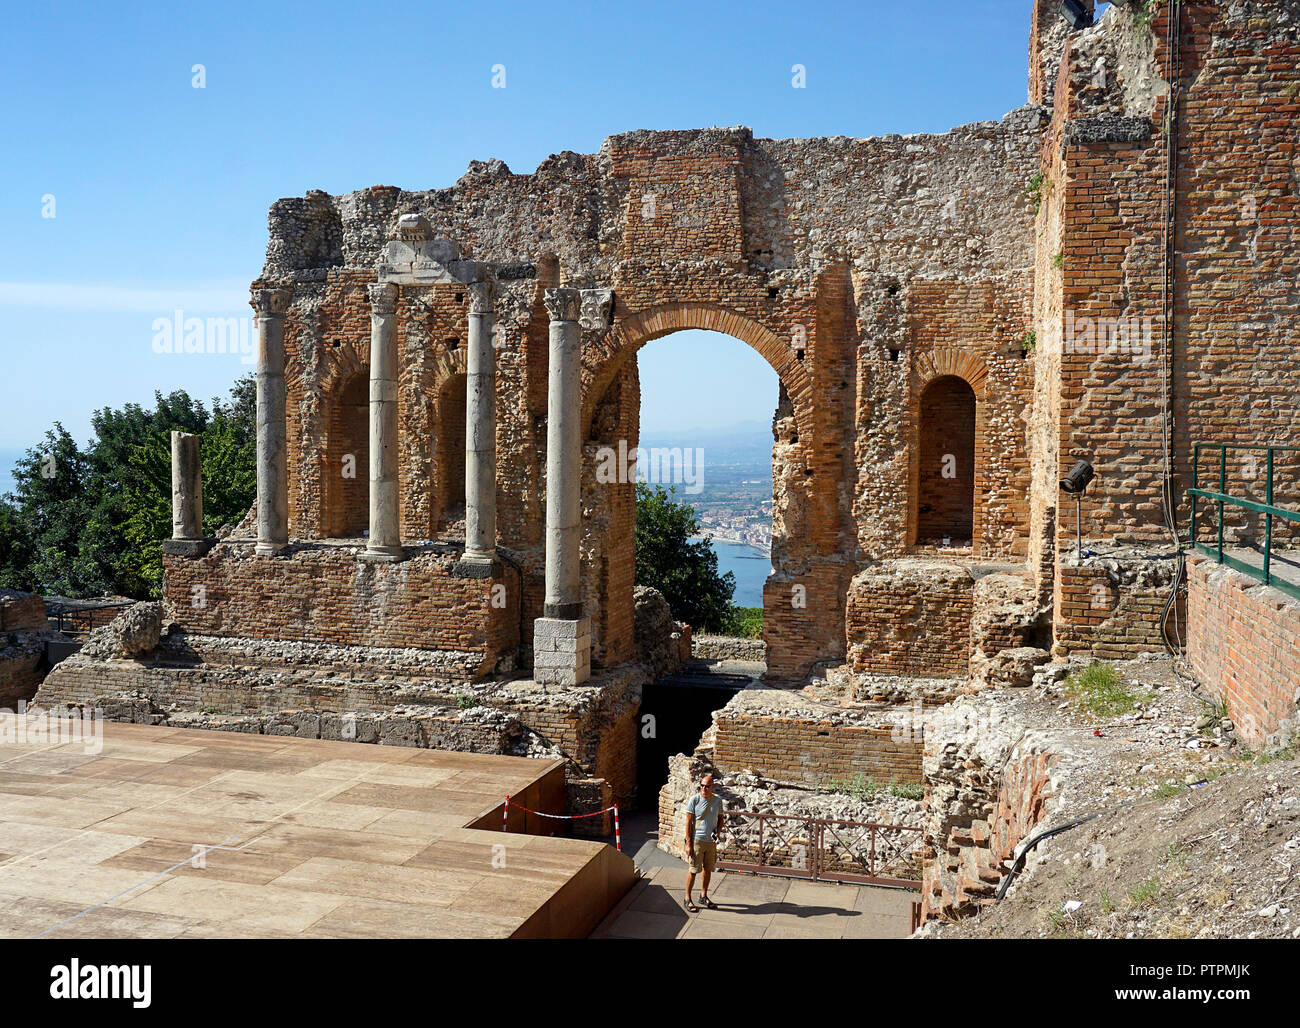 The ancient greek-roman theatre of Taormina, Sicily, Italy Stock Photo